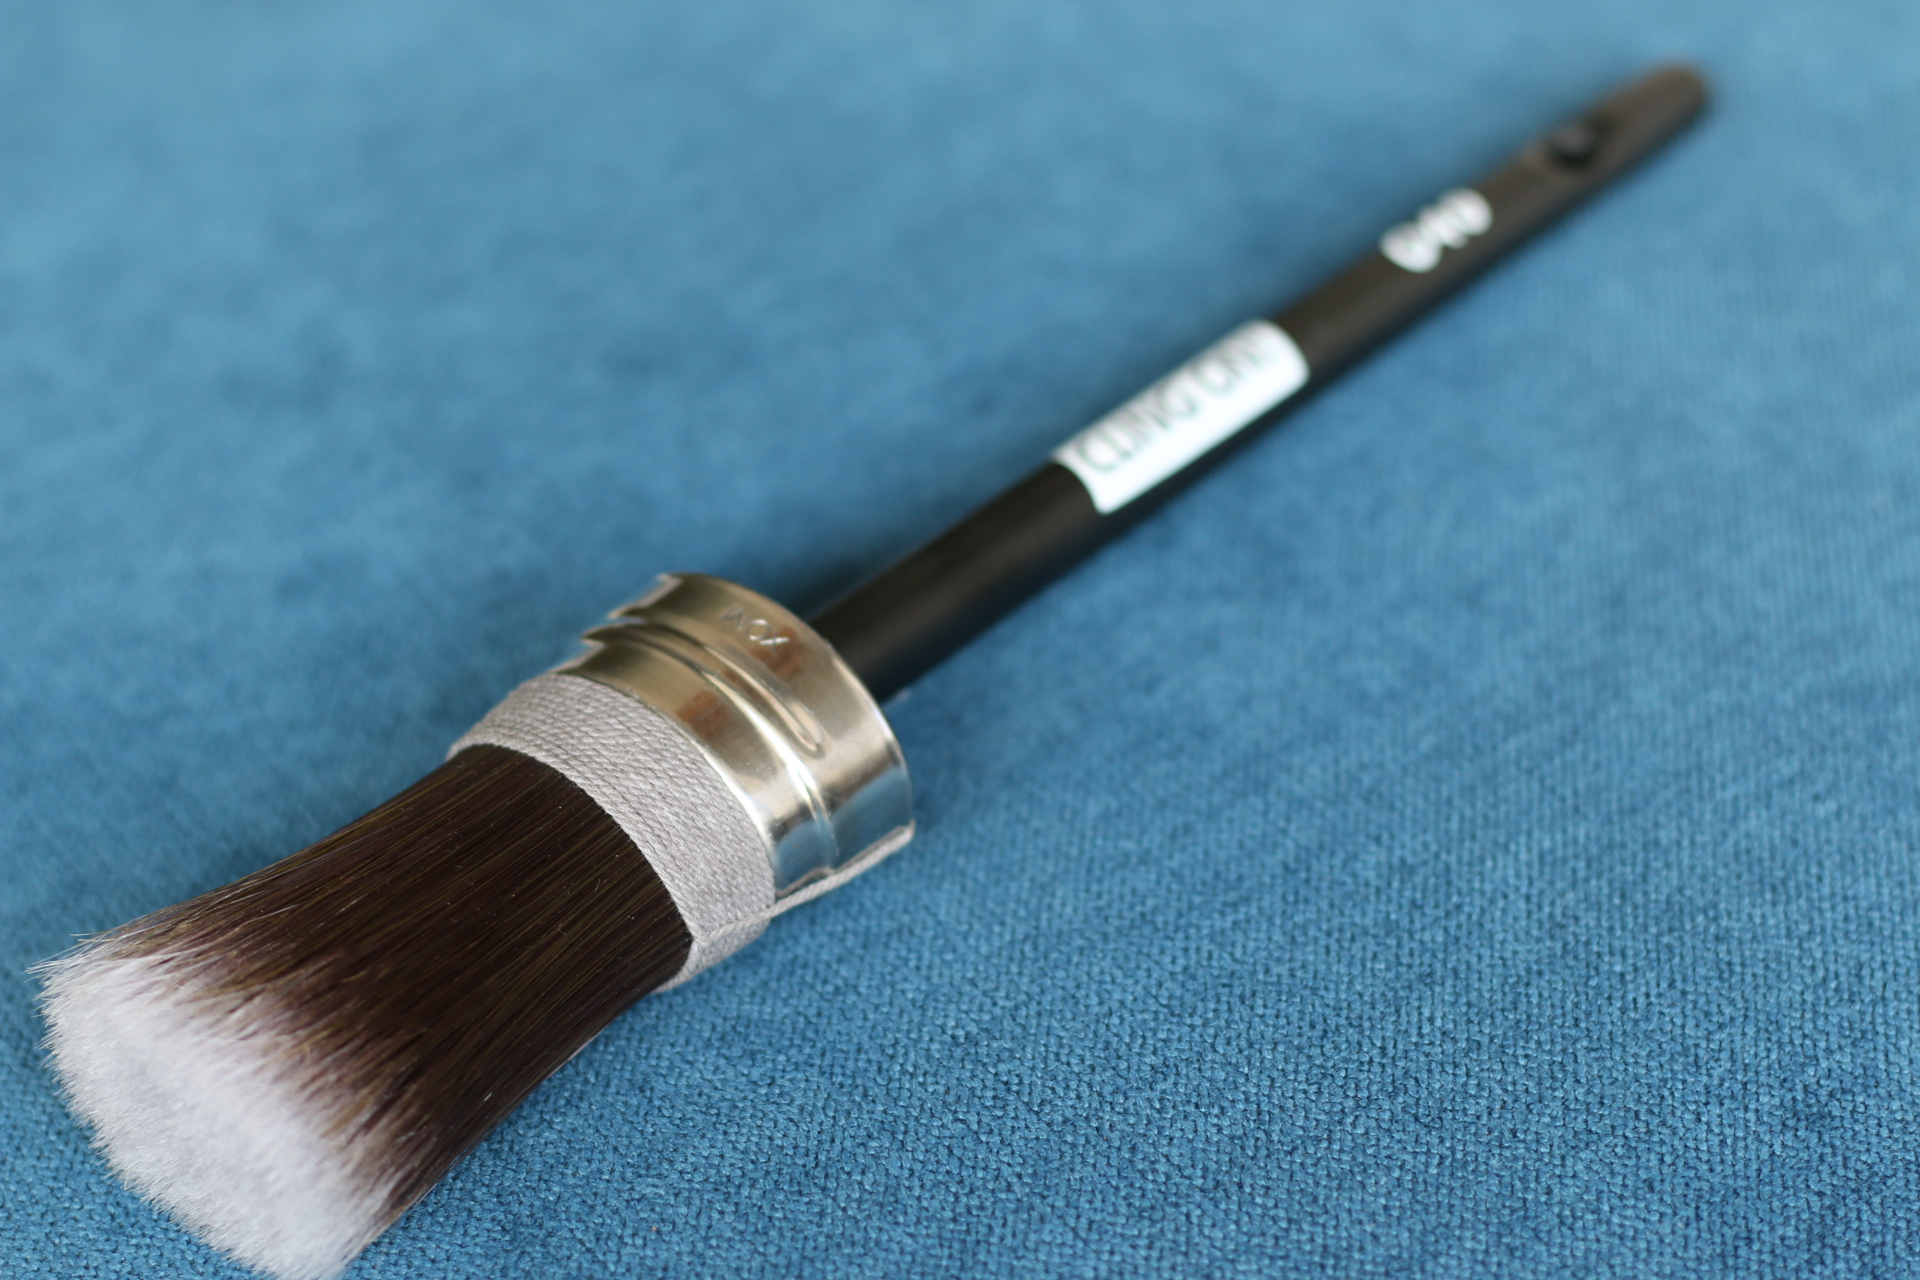 Superb quality brushes